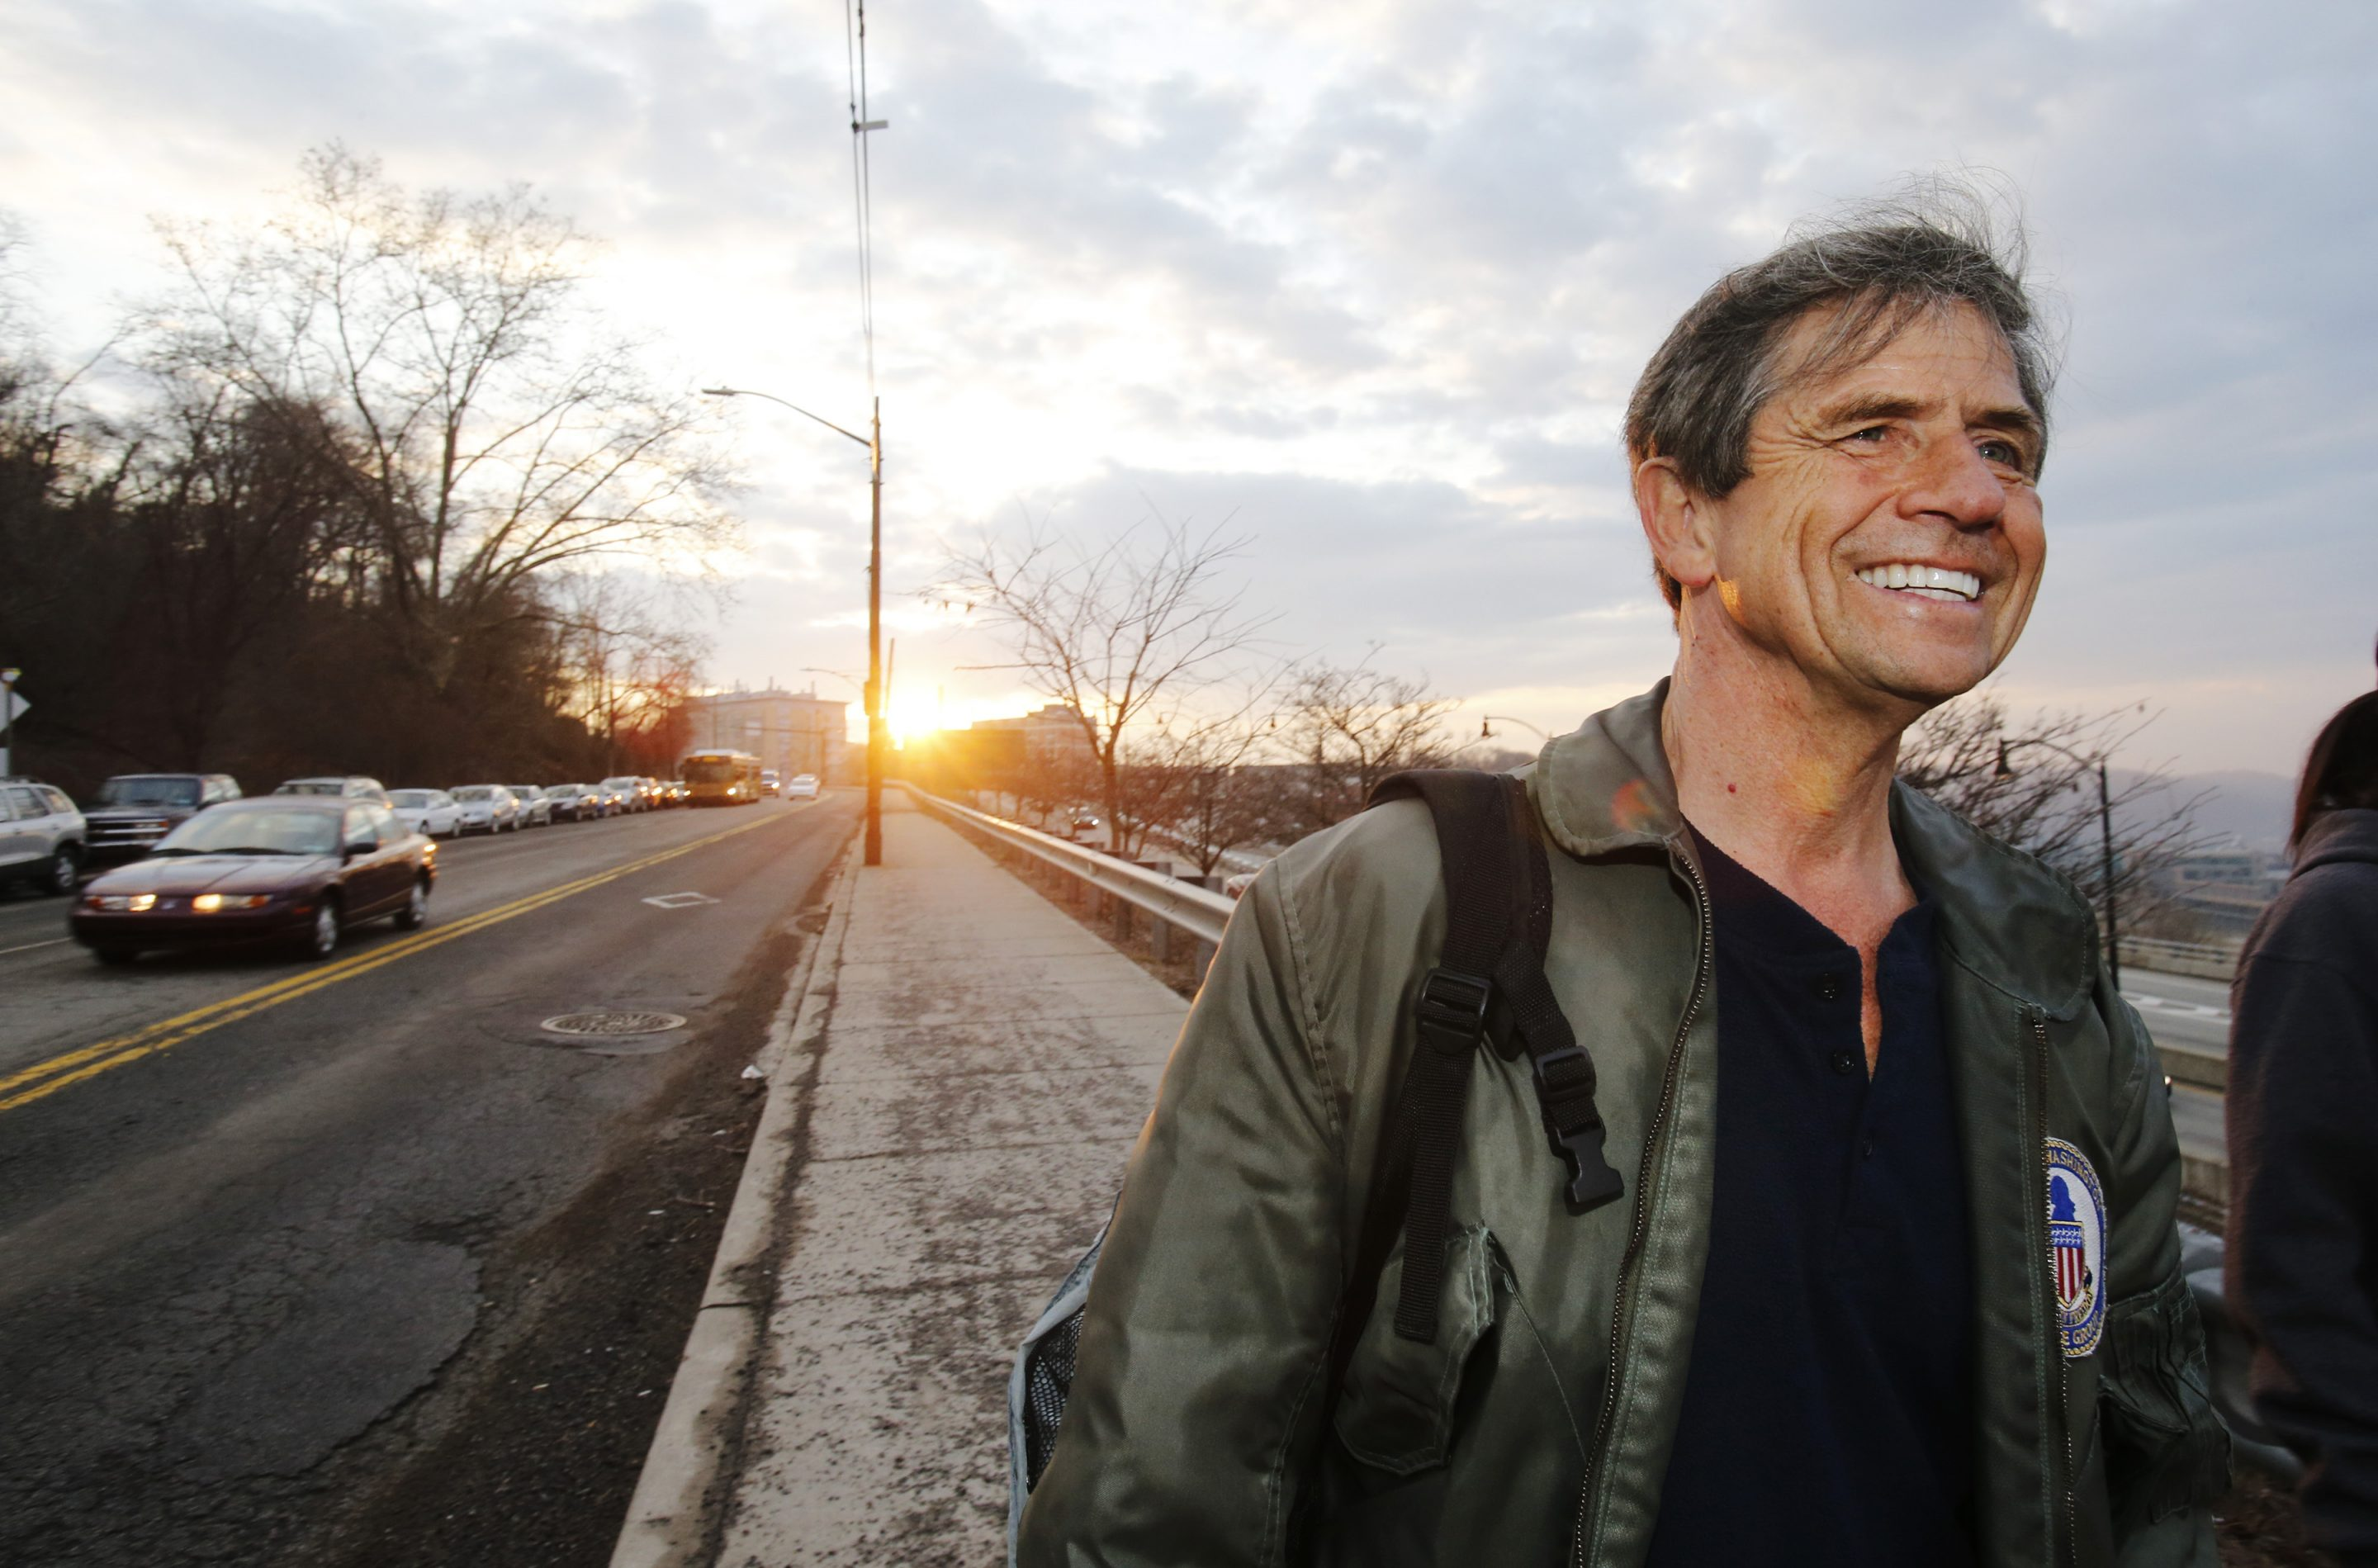 Former Pennsylvania Rep. Joe Sestak smiles on the side of the road in Pittsburgh on March 26, 2015.